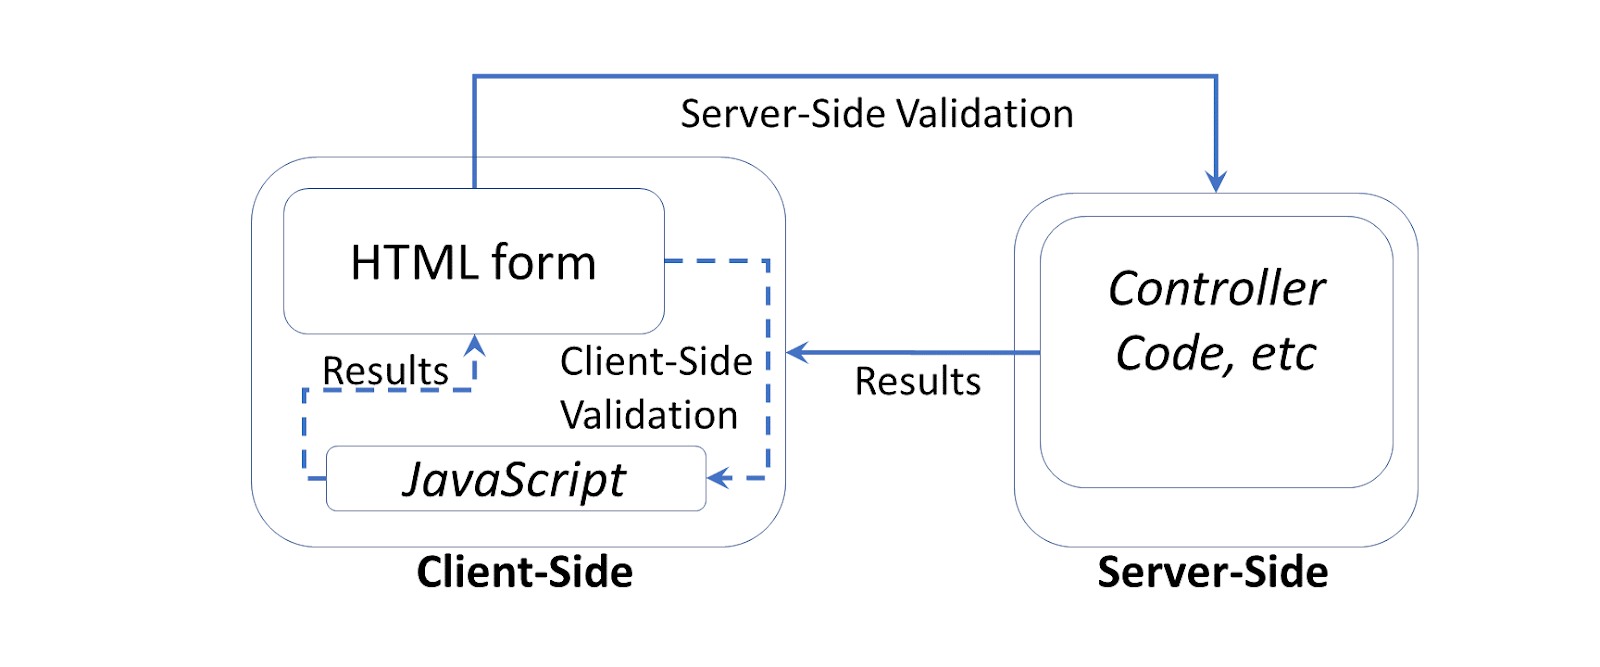 a flow chart depicting how server-side validation and client-side validation are placed within the sequence of actions that take place when a user interacts with an application and how the help secure your application and user data